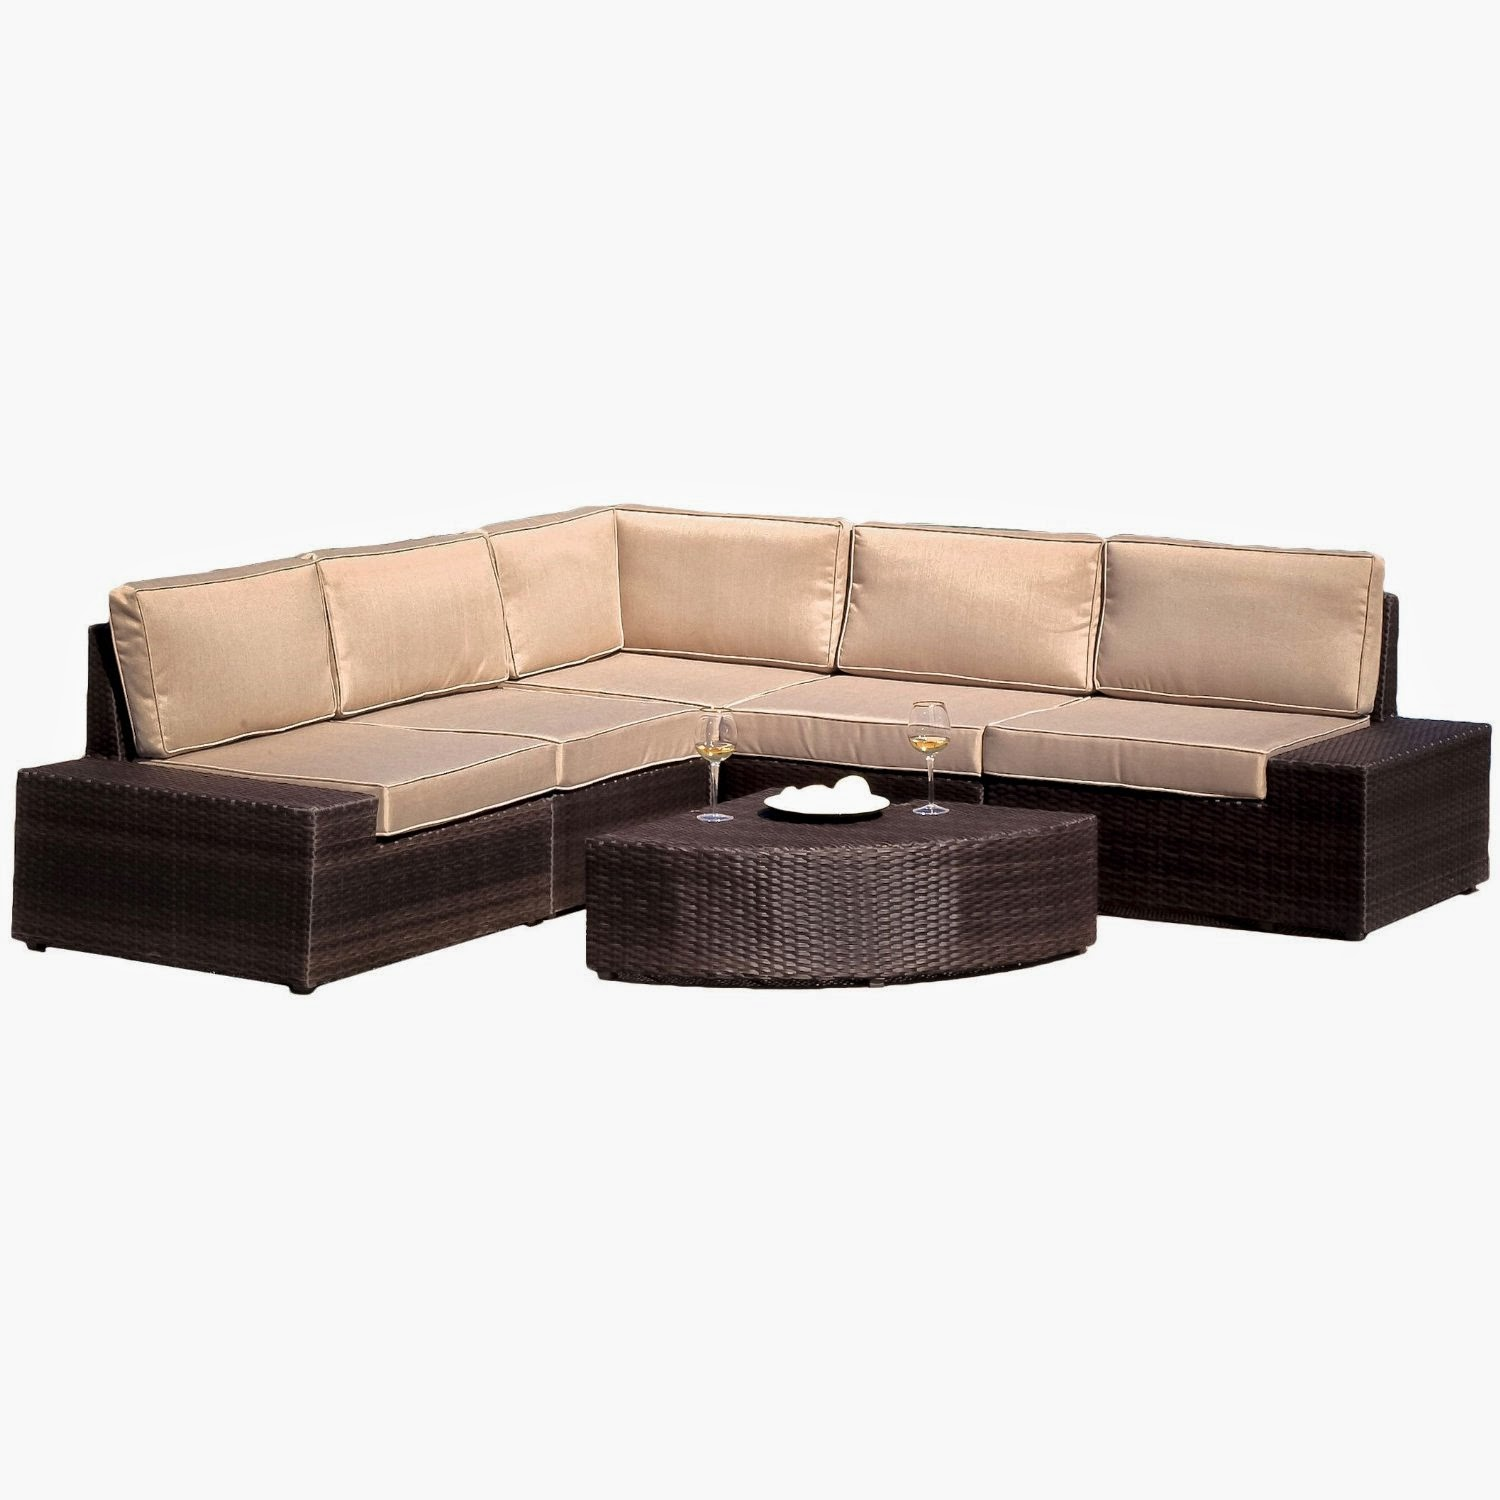 wicker sofas reading best selling say brook pe sofa set outdoor patio